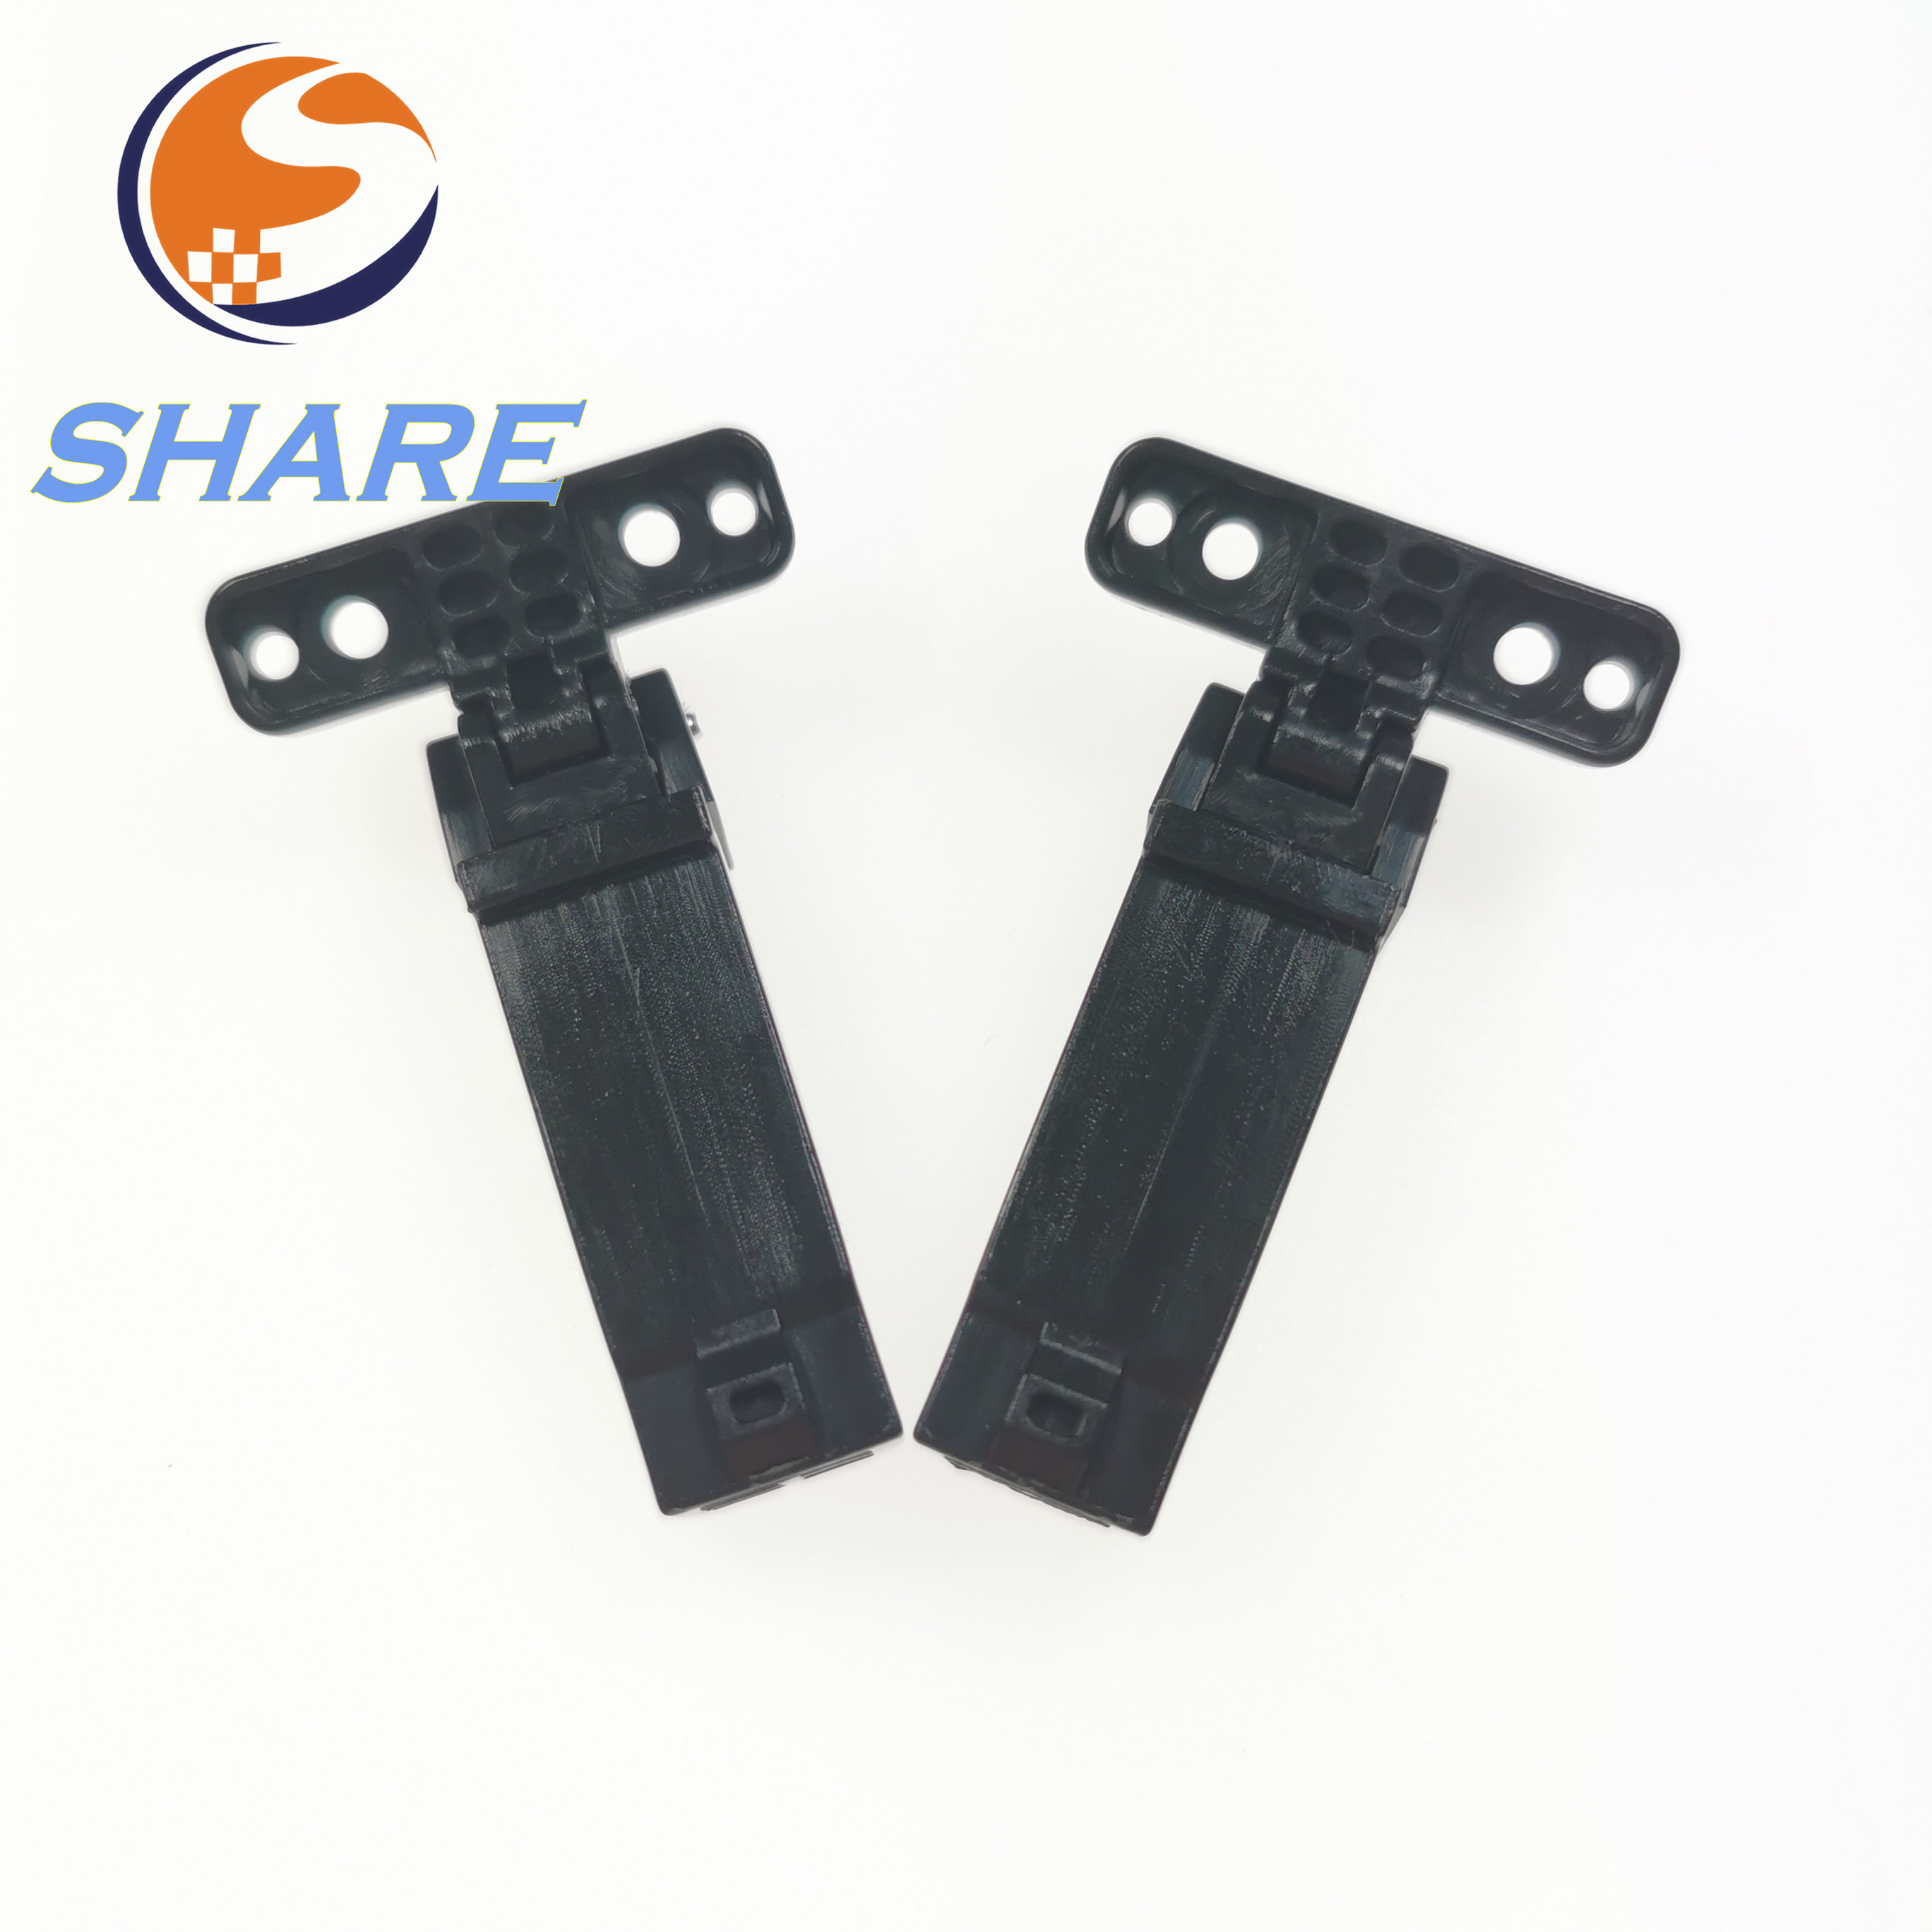 Share 1ps ADF Mea Unit Hinge Assembly Used For Samsung CLX3170 3175 3185 4175 3305 6260 SCX3400 3401 3405 3406 4600 4601 4623